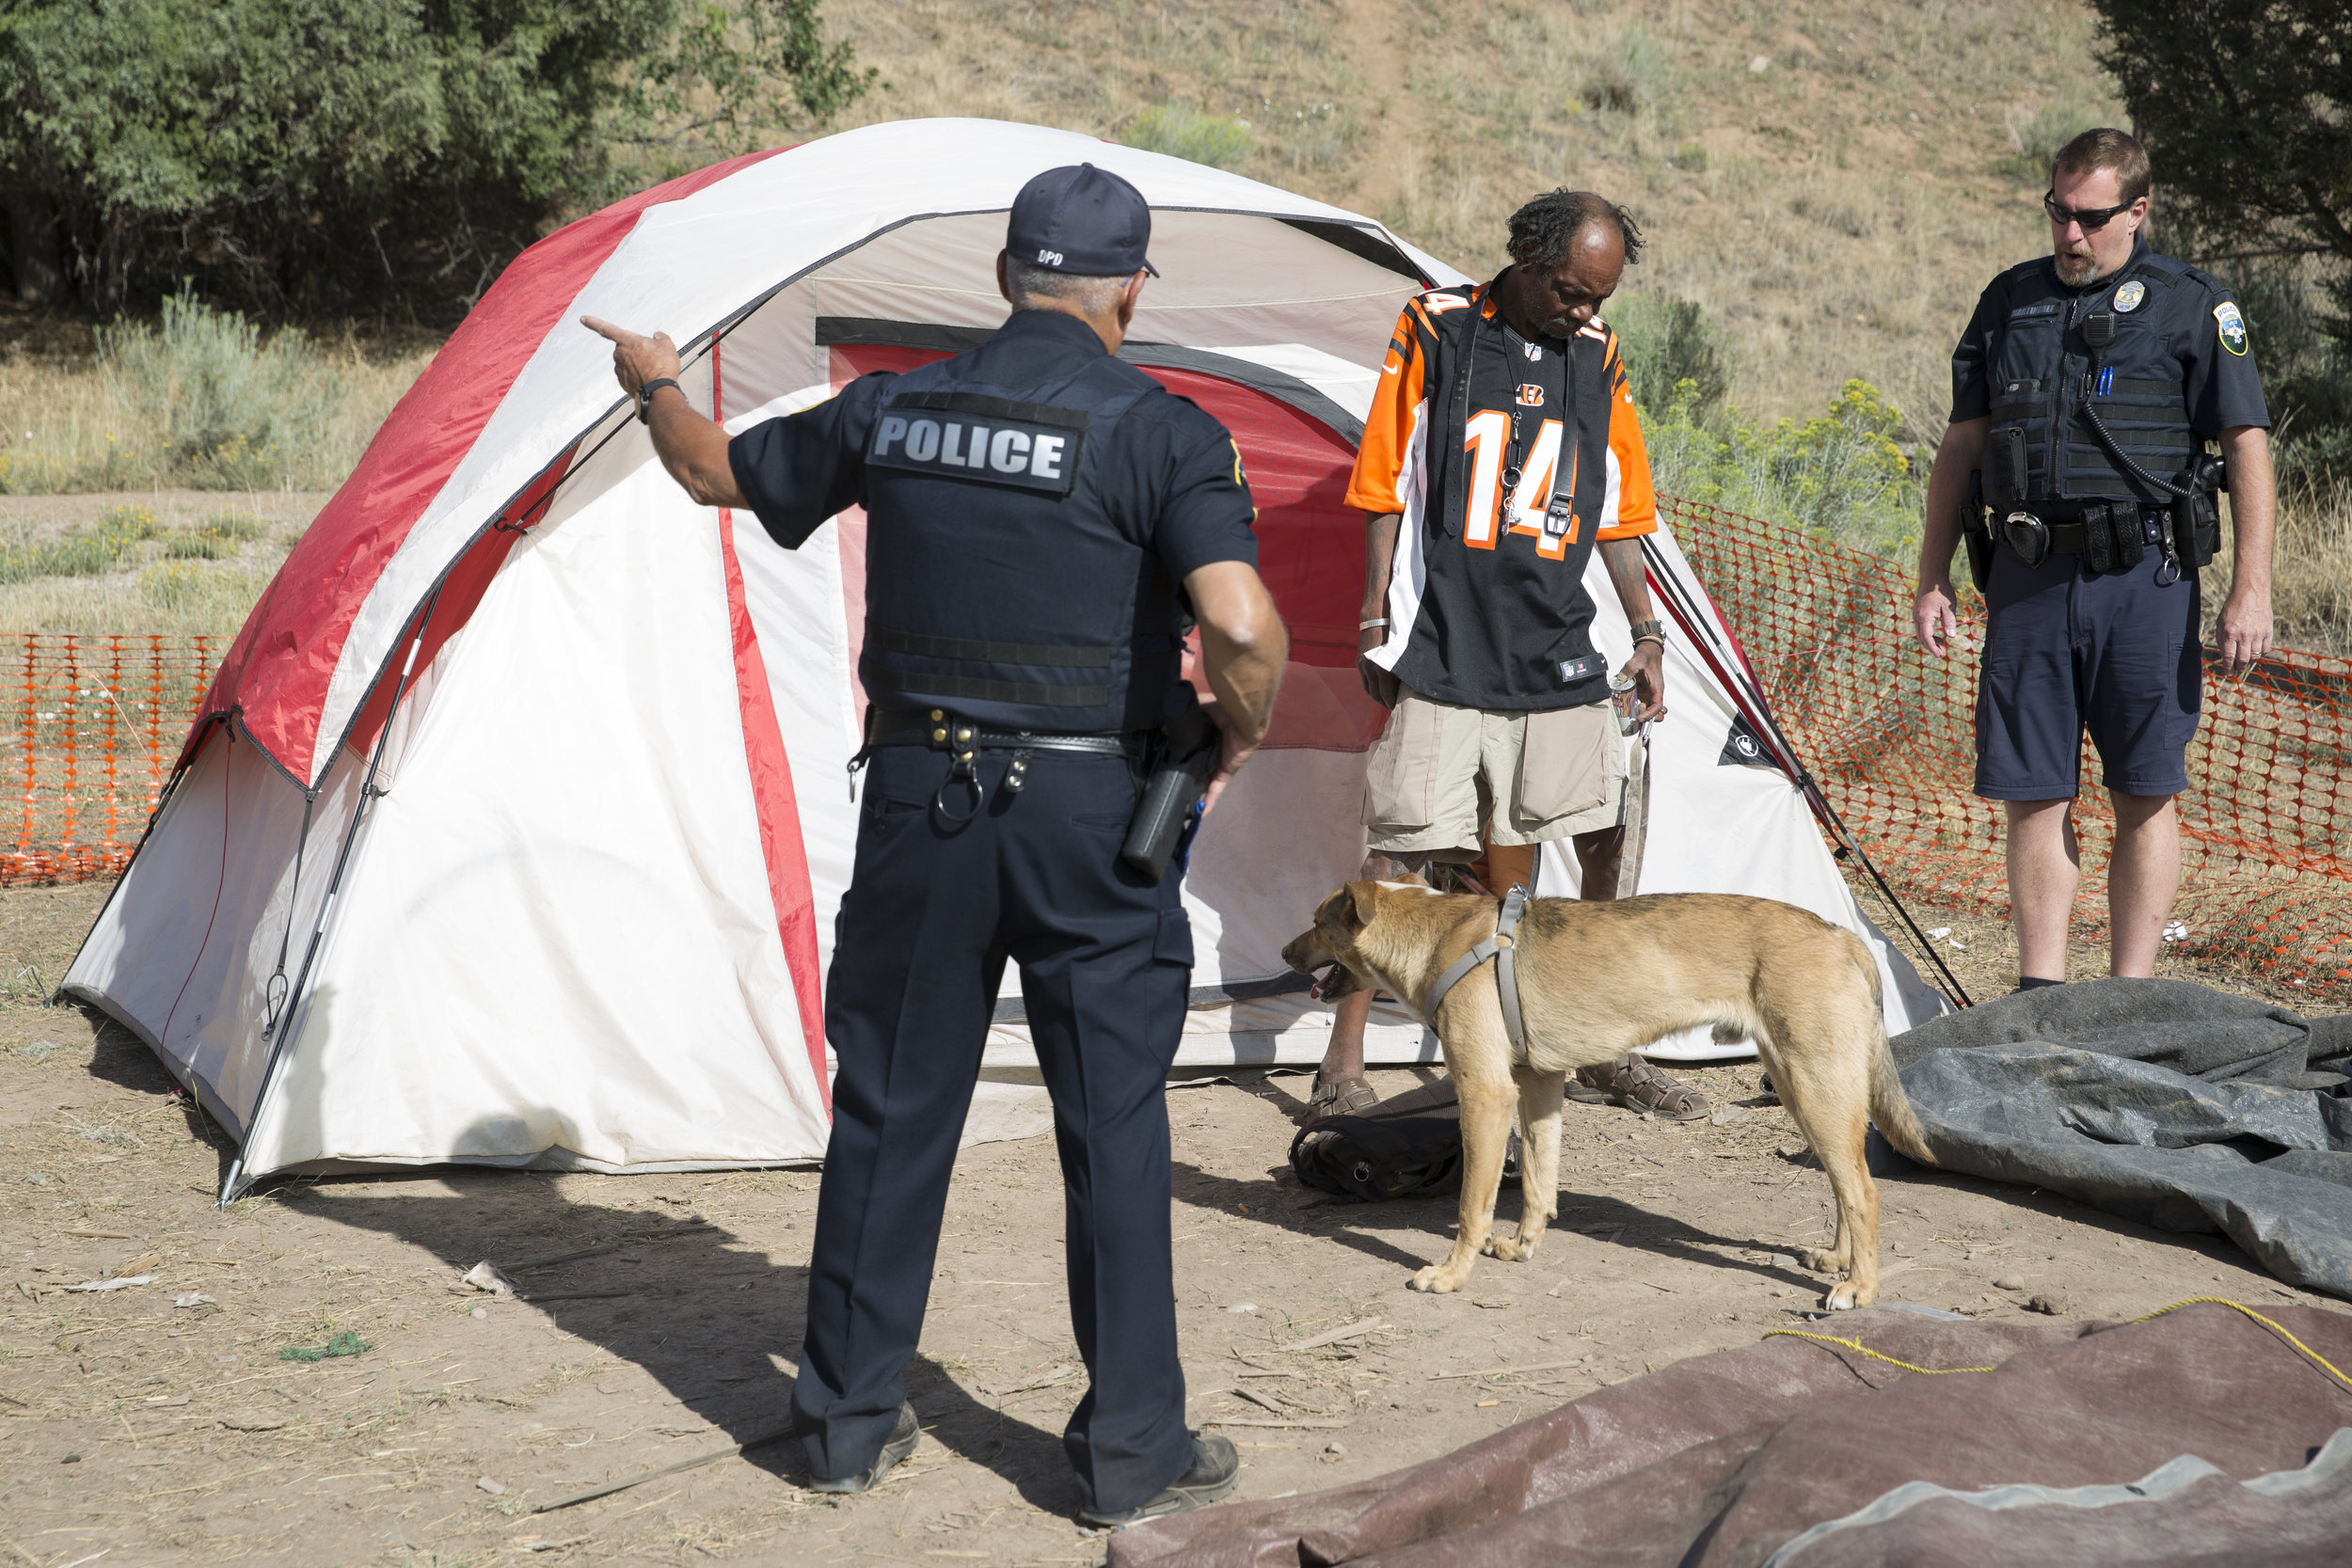 People slow to rise from a city-sanctioned homeless encampment near Durango, like Astro Aliva, center, sometimes were asked by Durango police to pack up for the day. (Scott DW Smith, Special to The Colorado Sun)